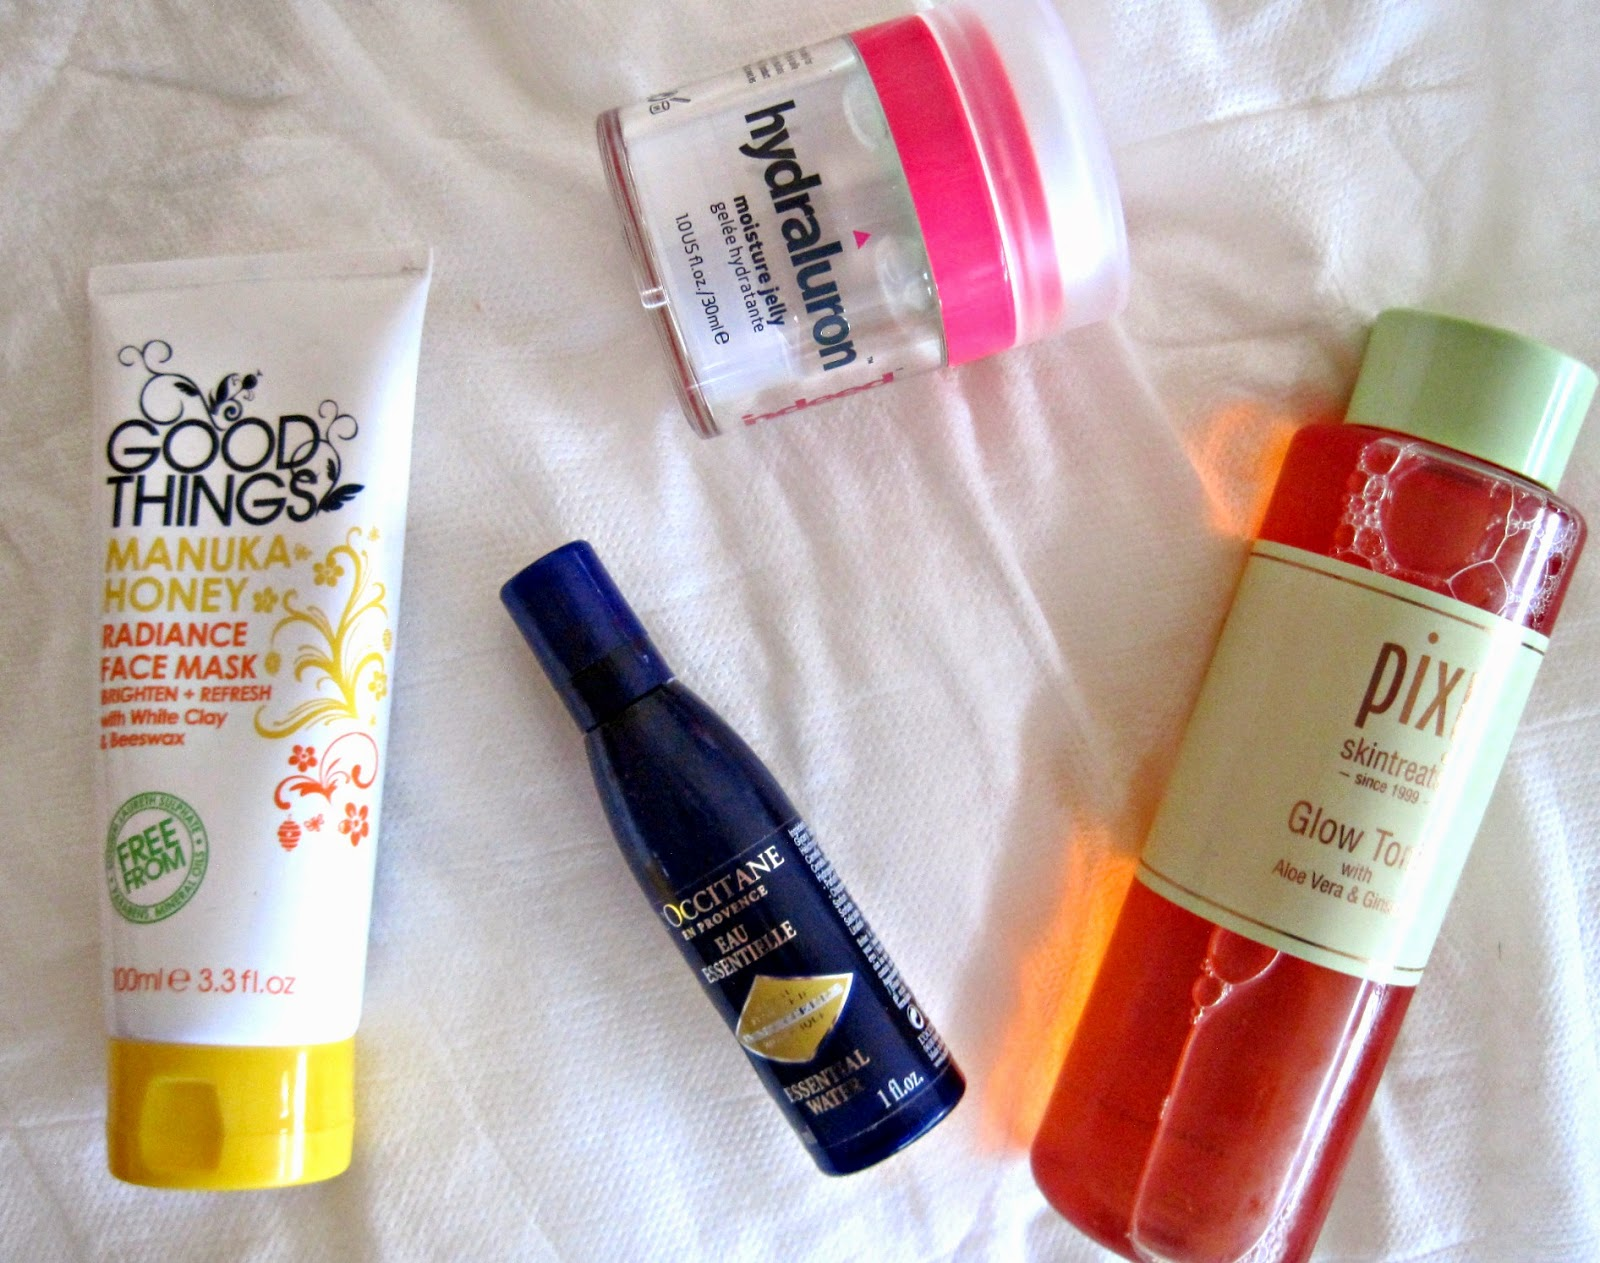 pixi glow tonic hydraluron mousture jelly l'occitane immortelle essential water good things manuka honey mask review swatch